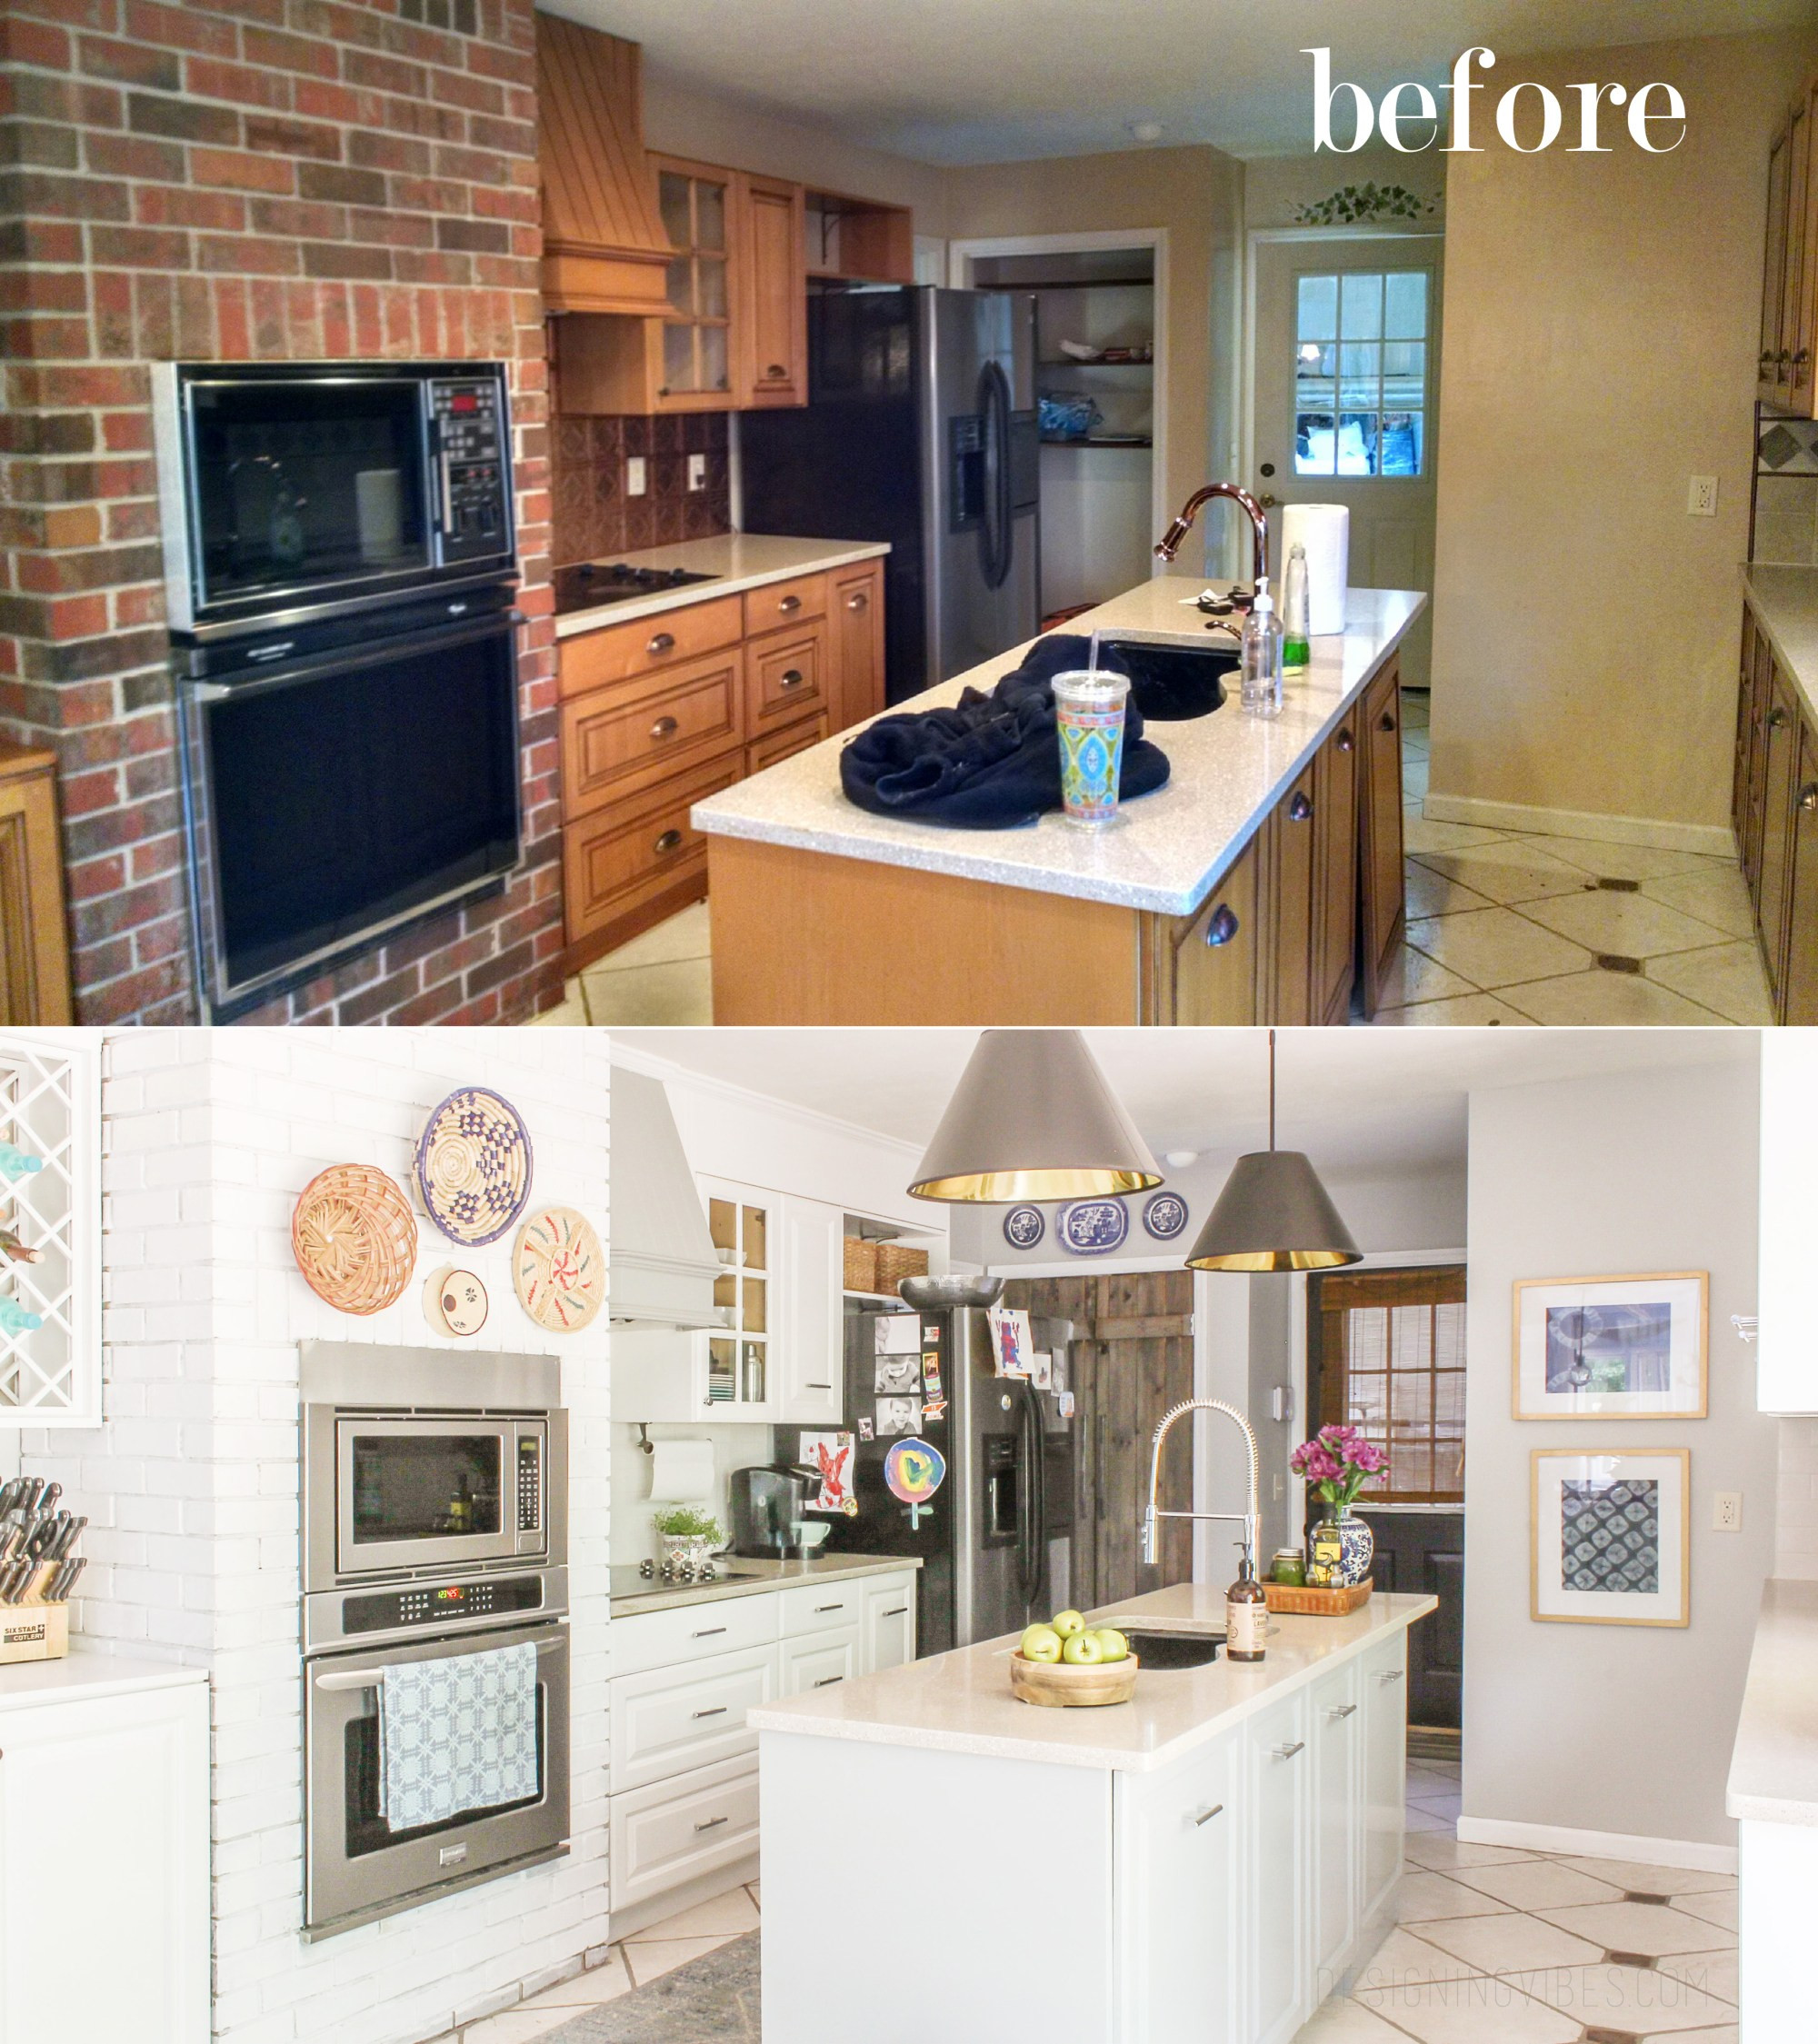 Best ideas about Diy Kitchen Ideas On A Budget . Save or Pin 5 Diy Bud Kitchen Renovations diy Thought Now.